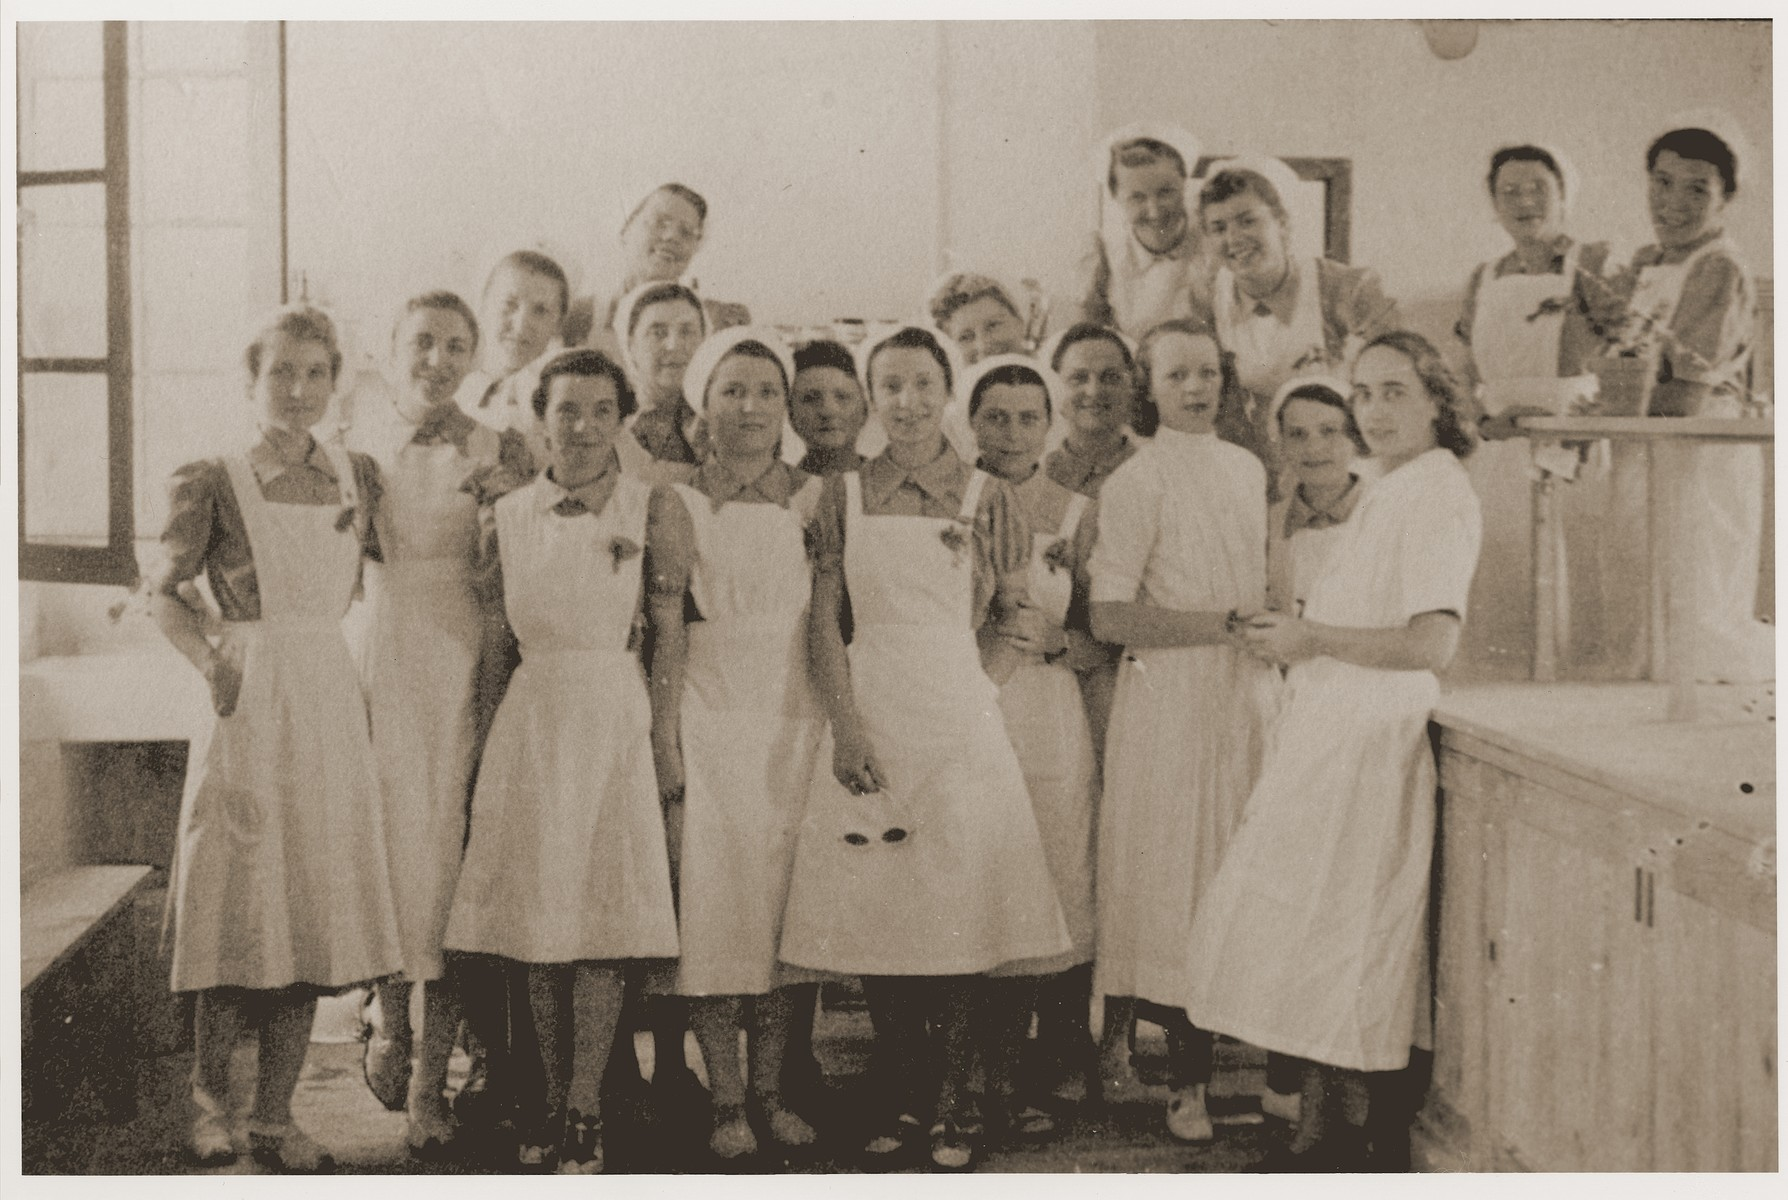 """Nurses in the """"laboratory"""" of the Recebedou camp infirmary.   On the right, leaning against the counter, is Dr. Mirc. Two to the left of her is Mademoiselle Baguelin. At the back on the left, in glasses, is Odette Clauzolles. In the front row, third from the left, is Mademoiselle Rondespierre."""